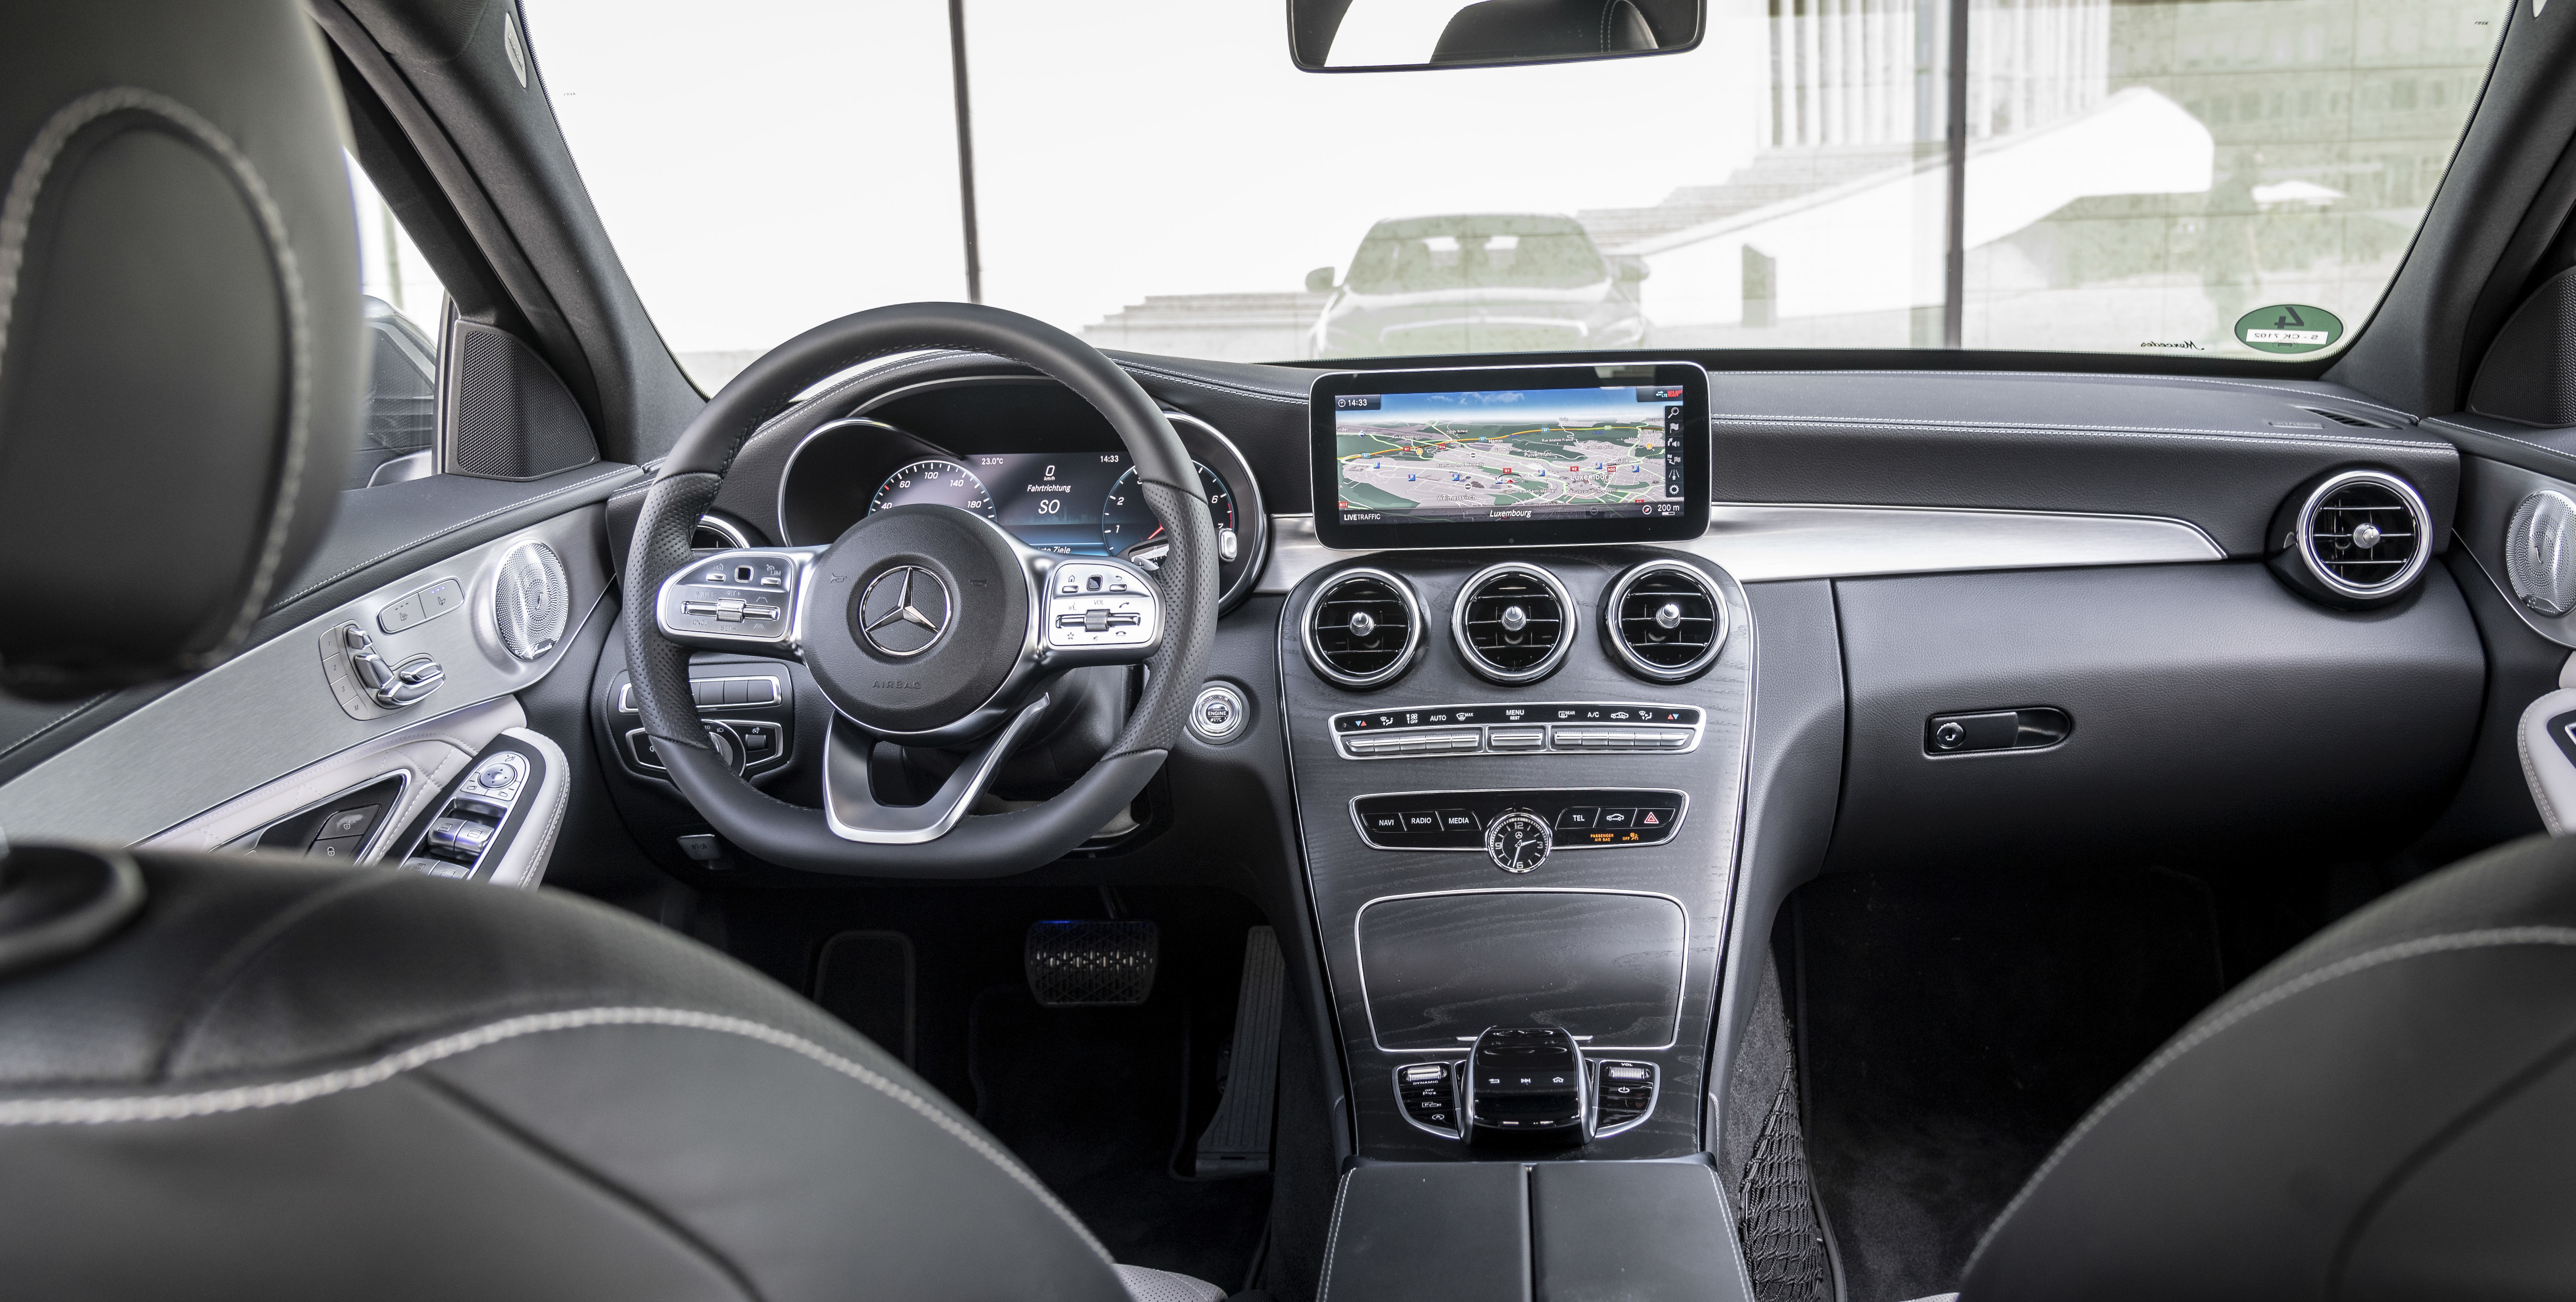 Mercedes-Benz C-Class: How new is new?